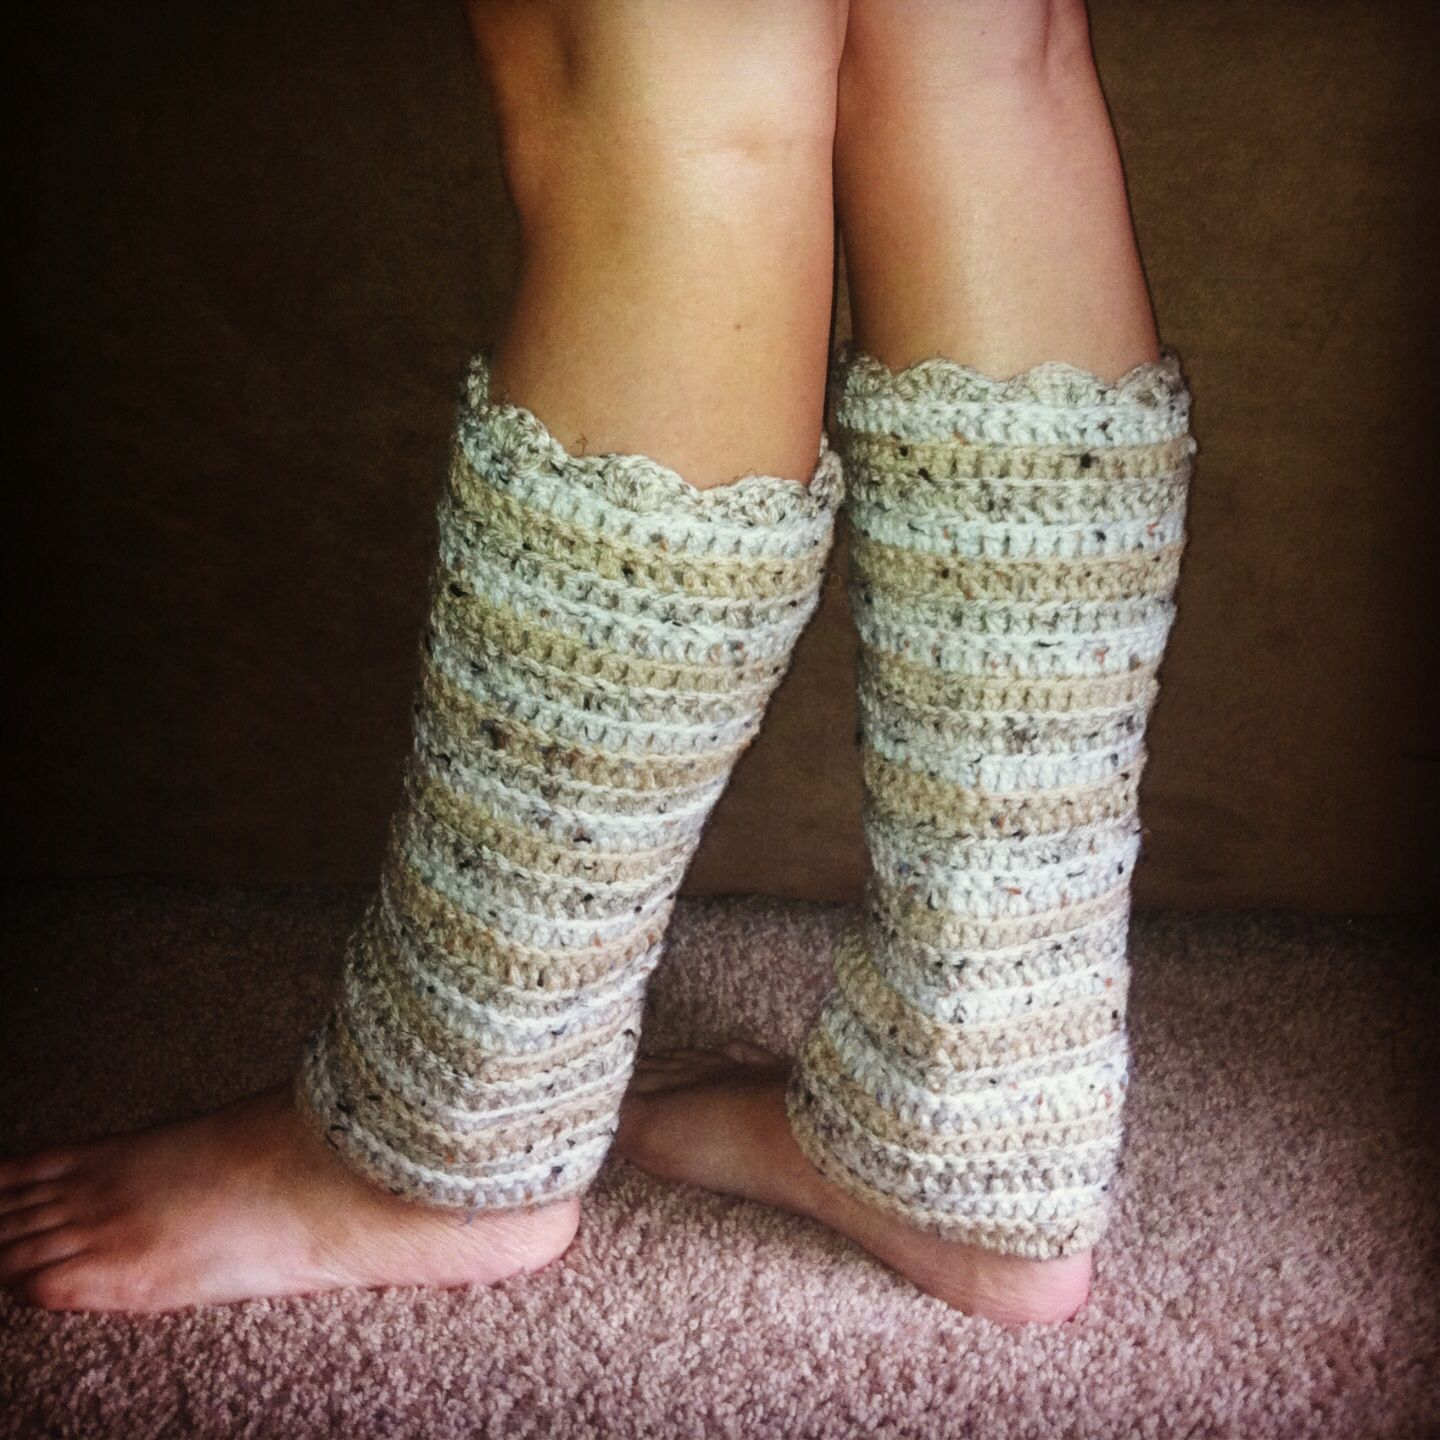 Crocheting Leg Warmers : Crocheted leg warmers crochet Pinterest